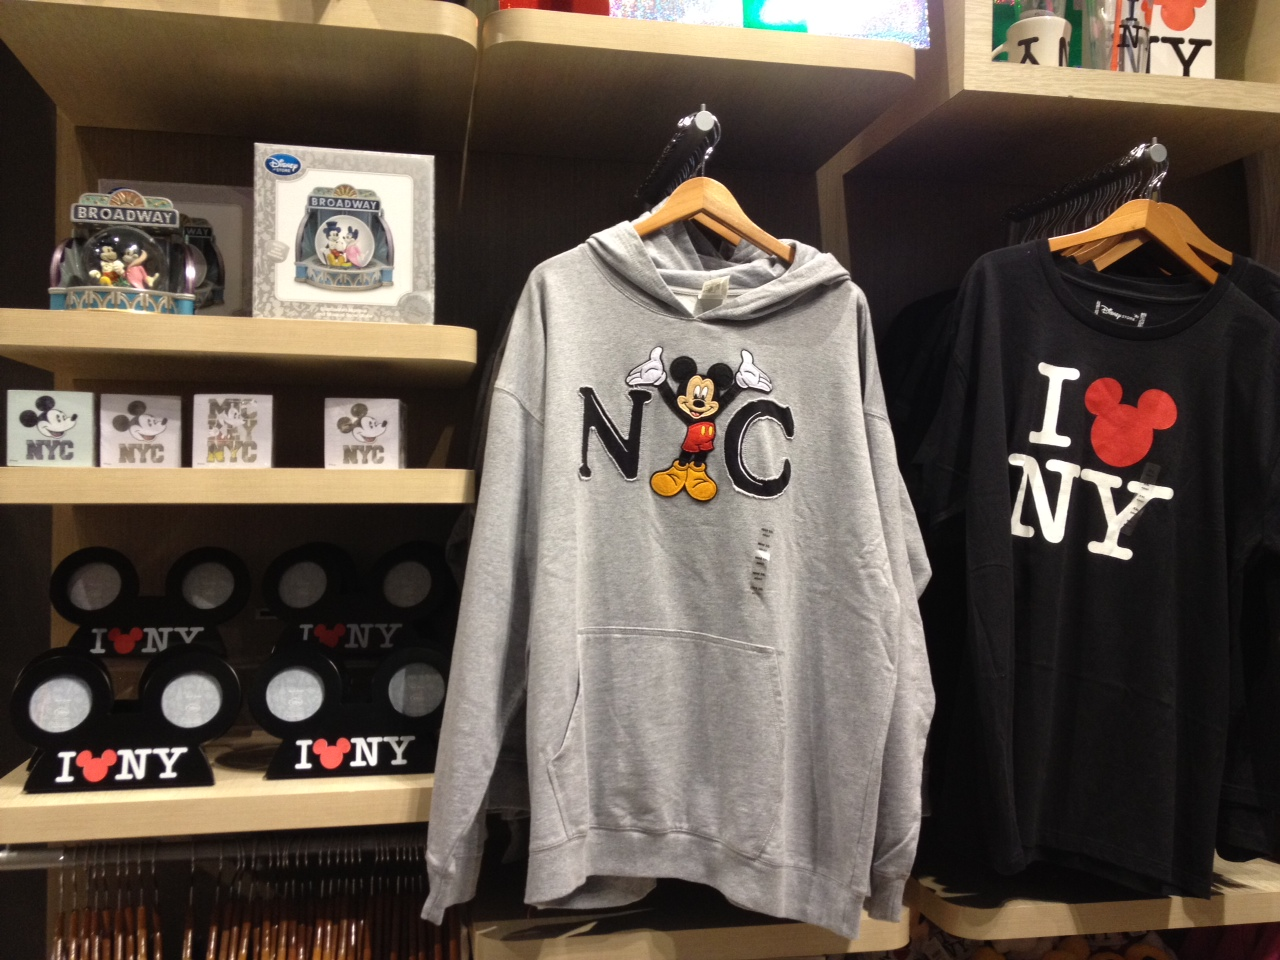 Disney Stores Around The World Unique Gifts To Collect